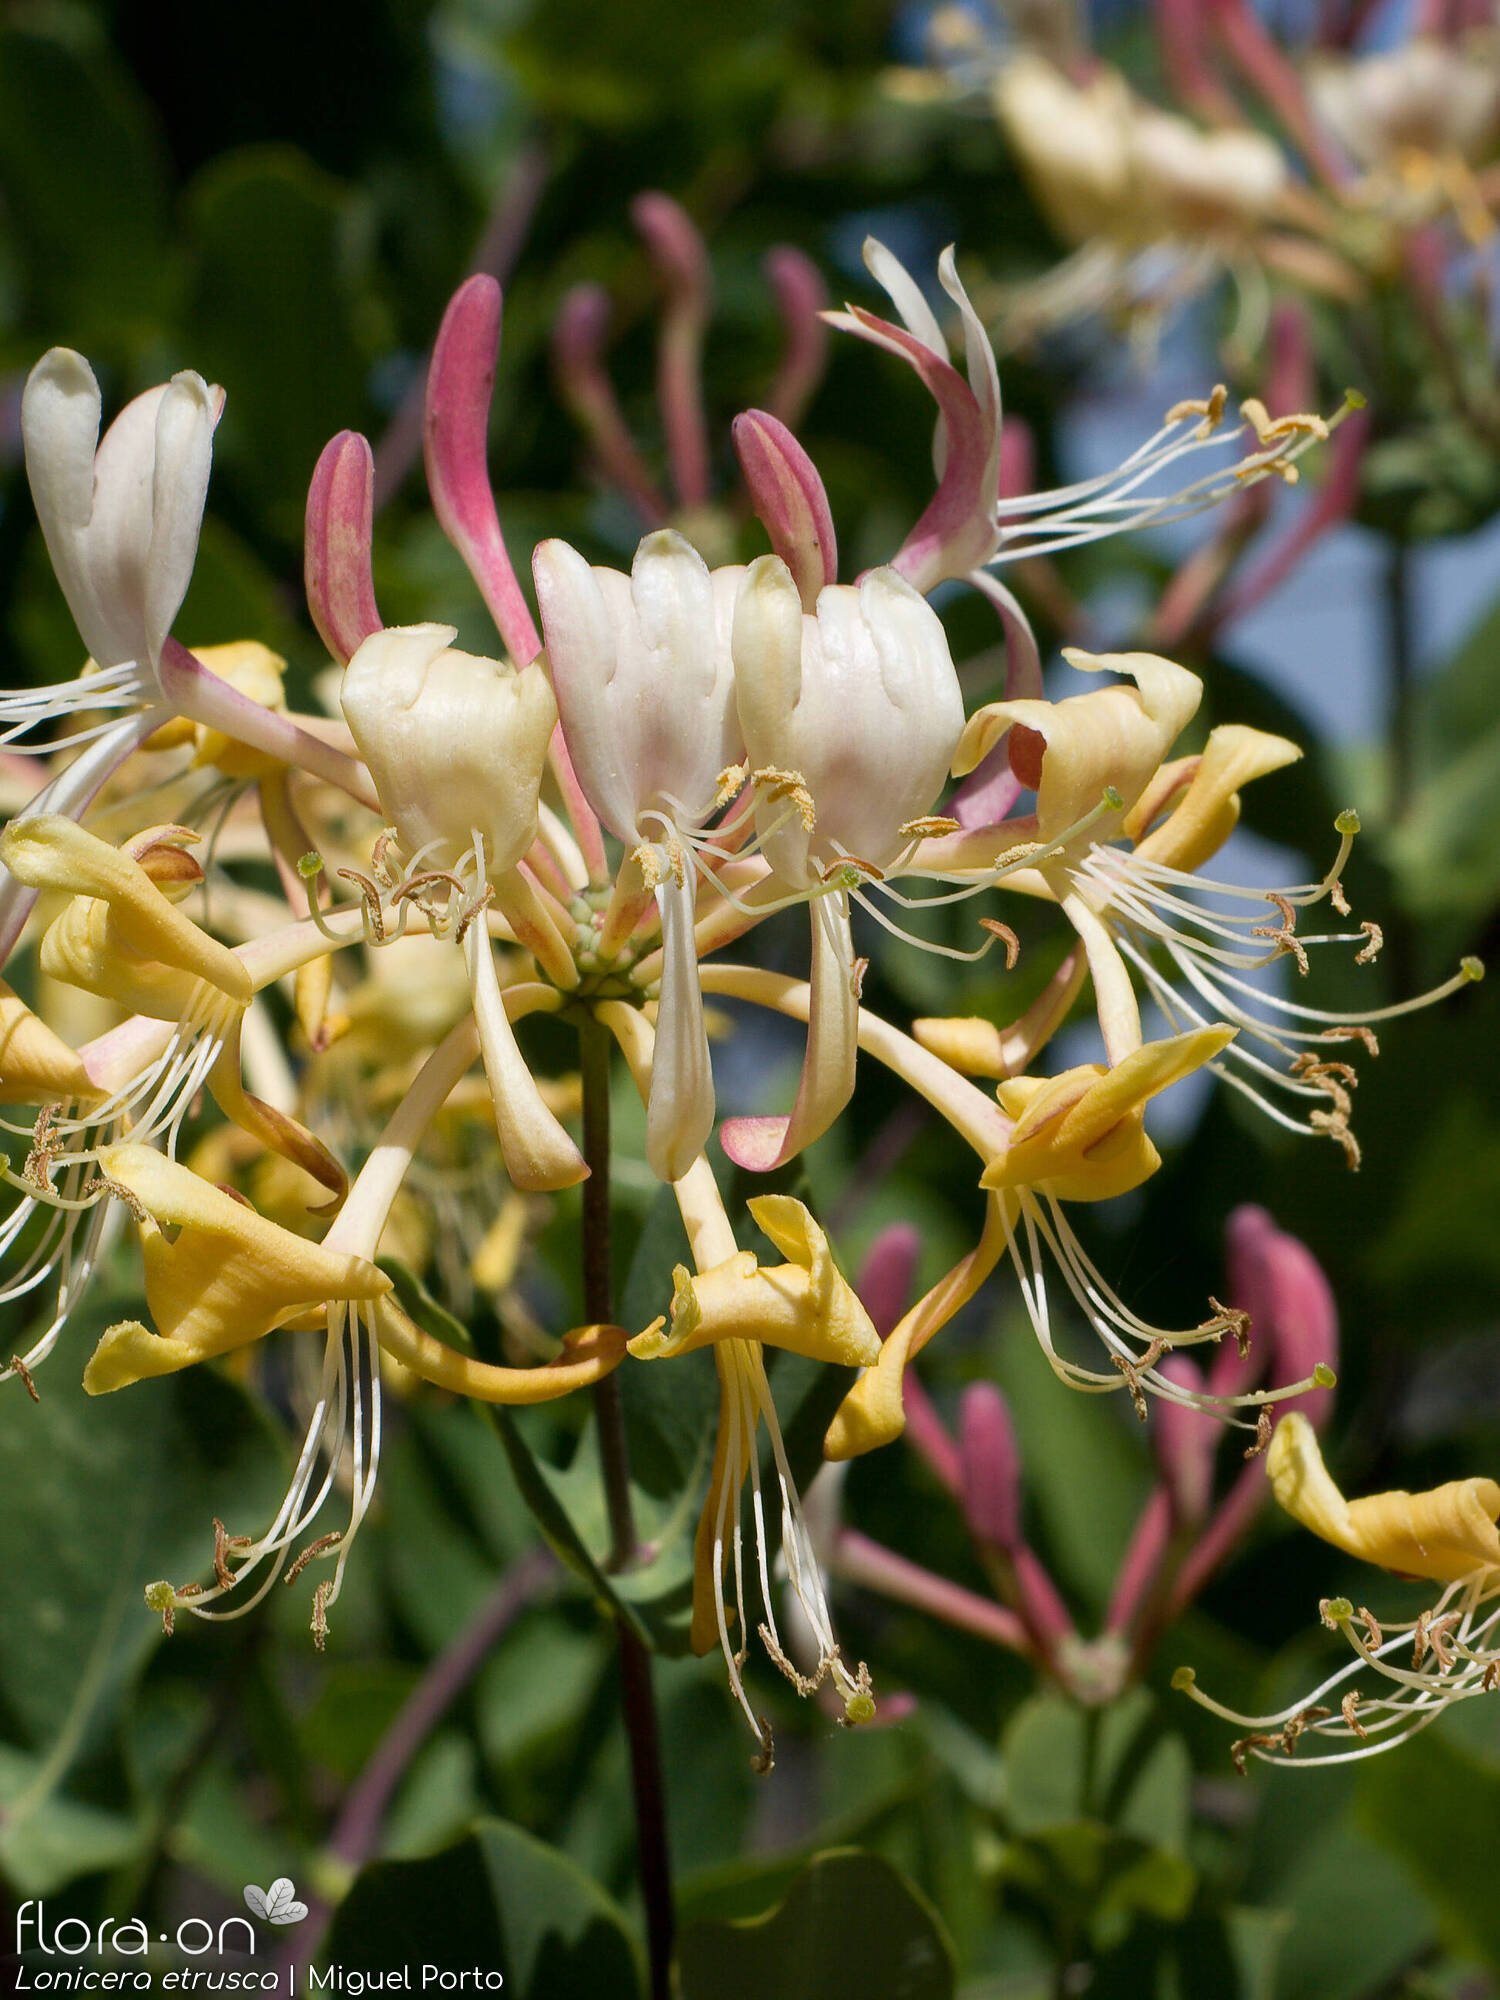 Lonicera etrusca - Flor (geral) | Miguel Porto; CC BY-NC 4.0